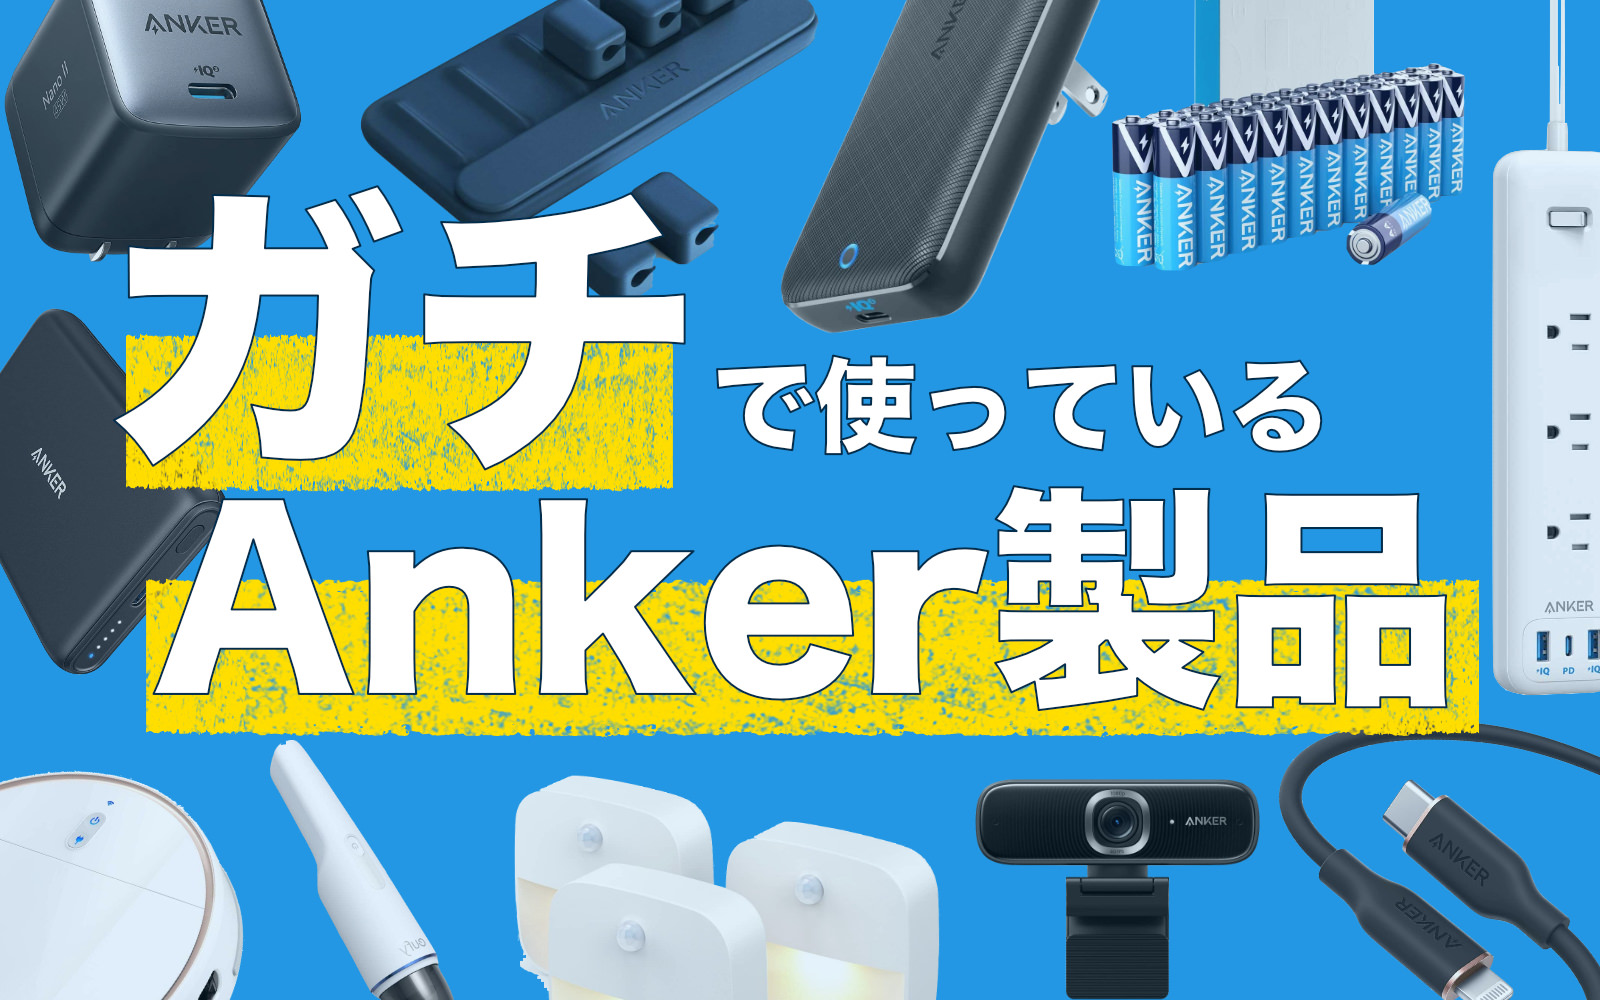 Anker Products I Use Daily